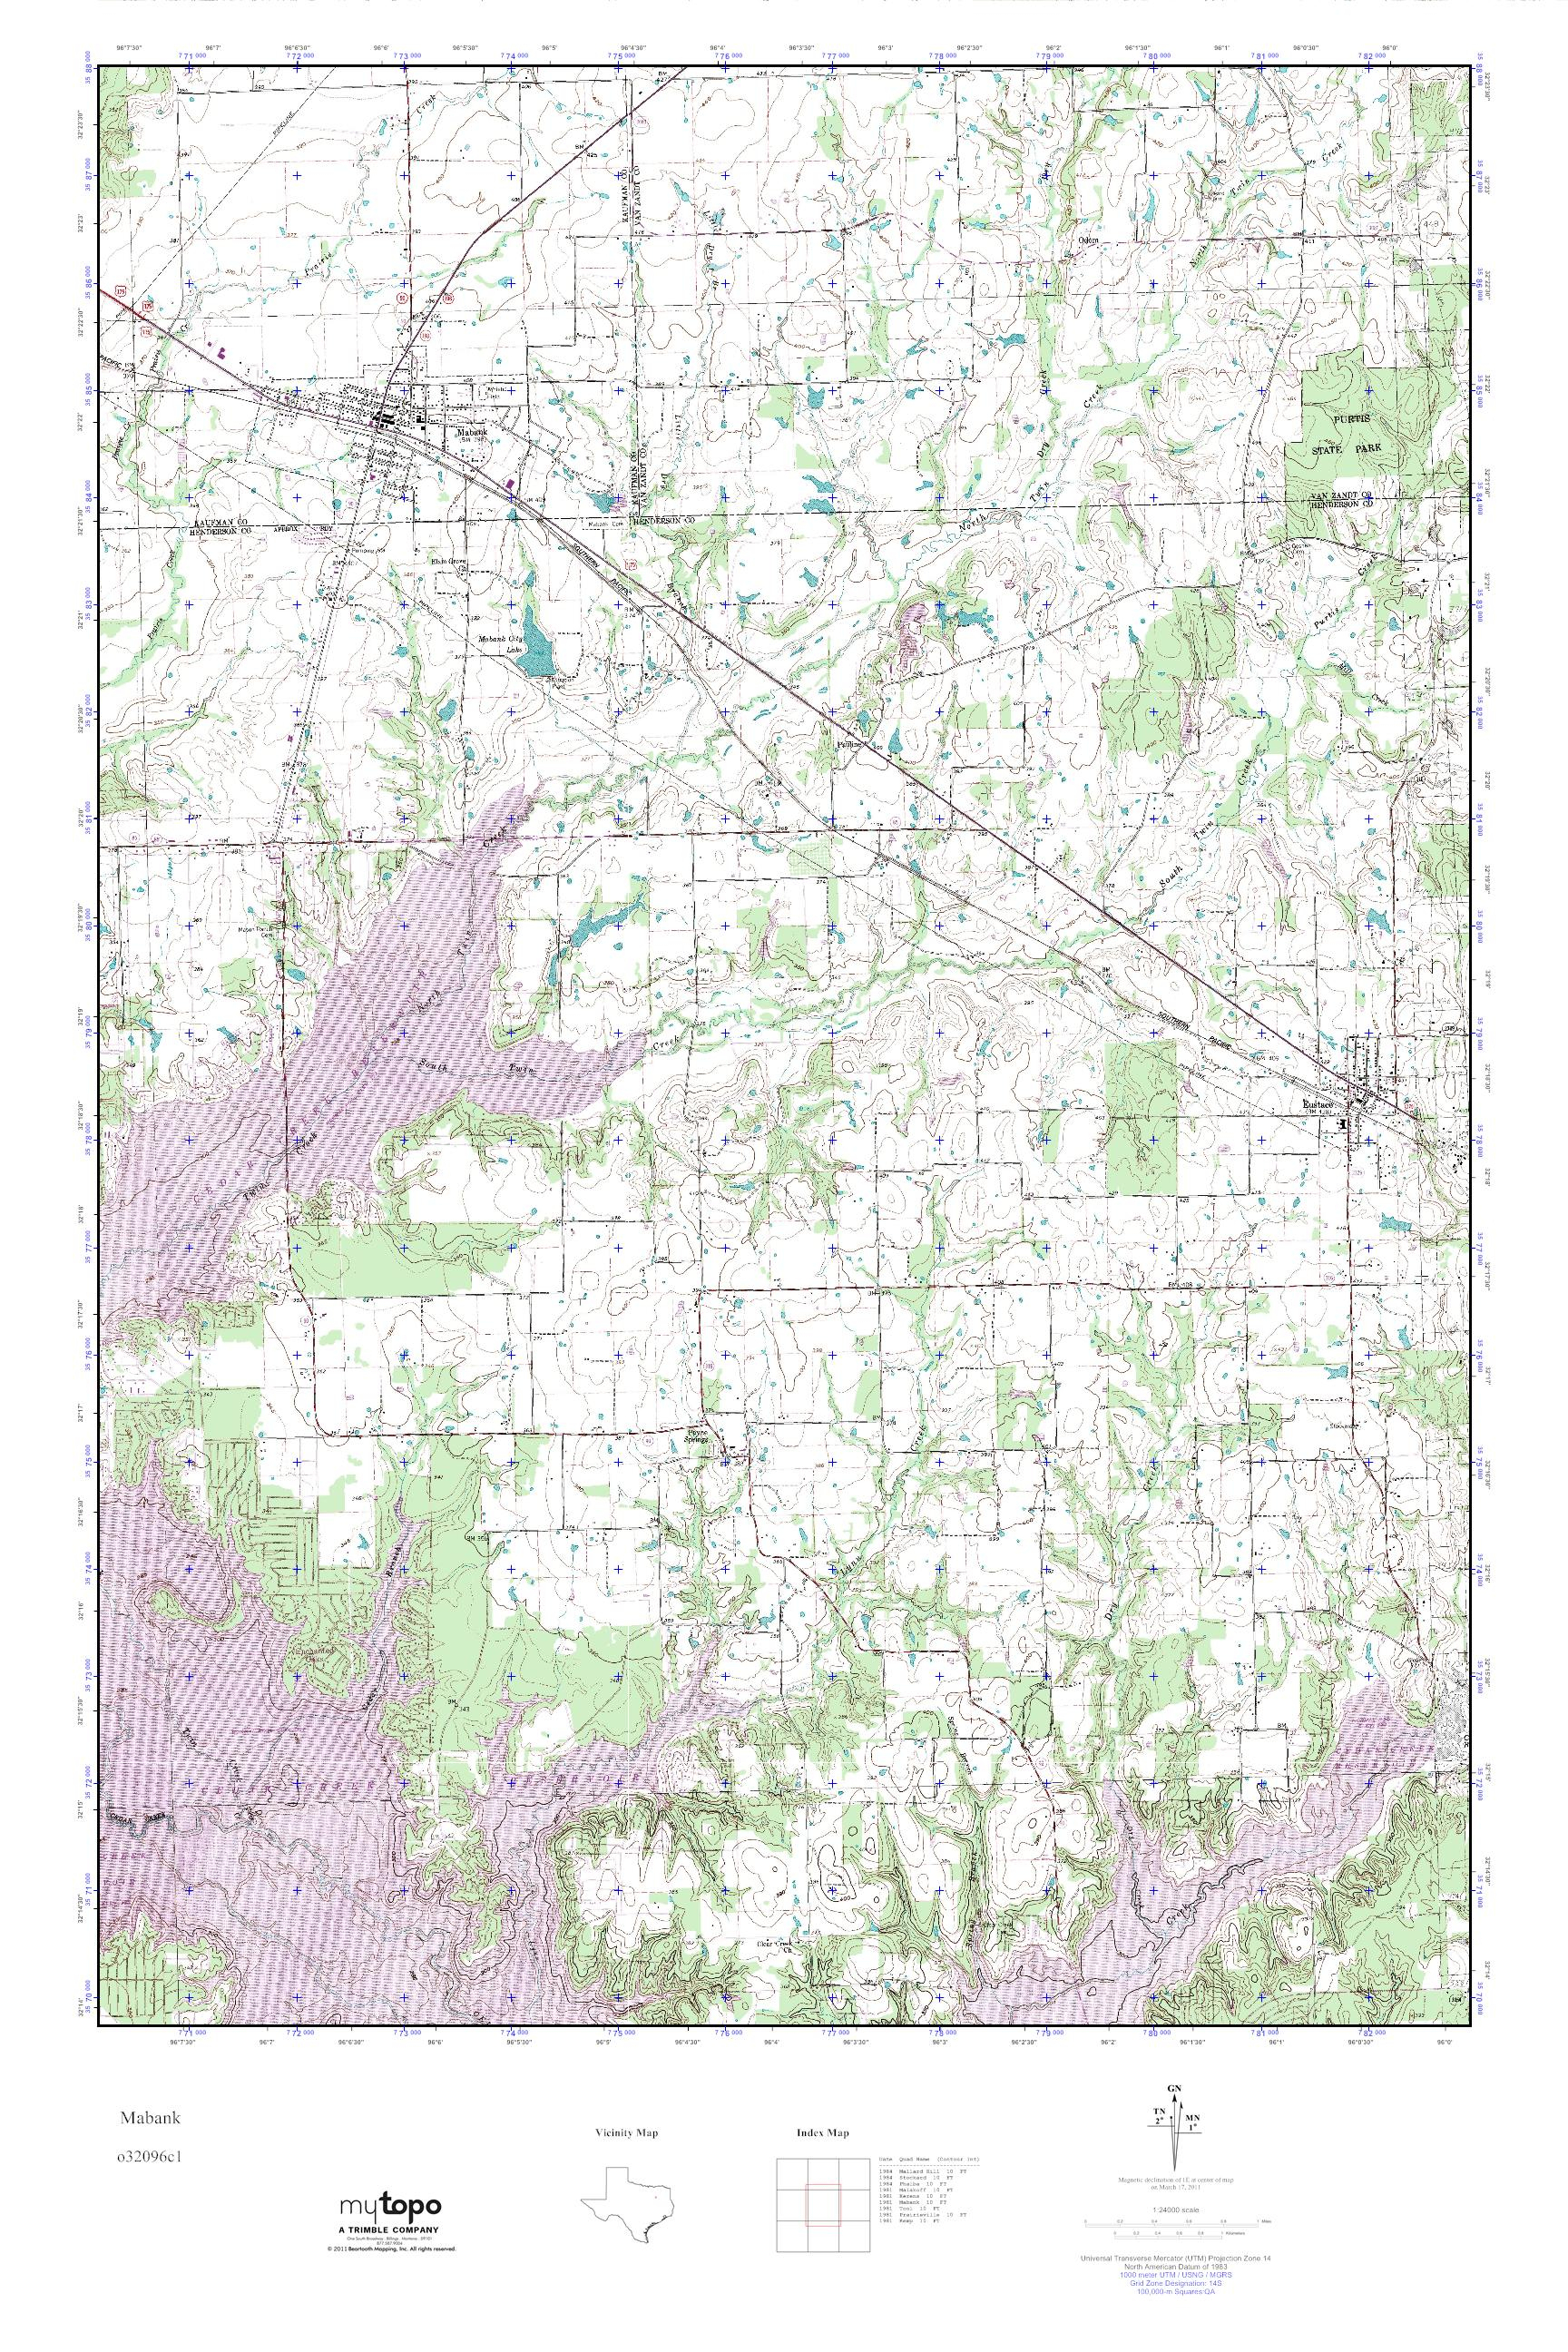 Mytopo Mabank, Texas Usgs Quad Topo Map - Mabank Texas Map